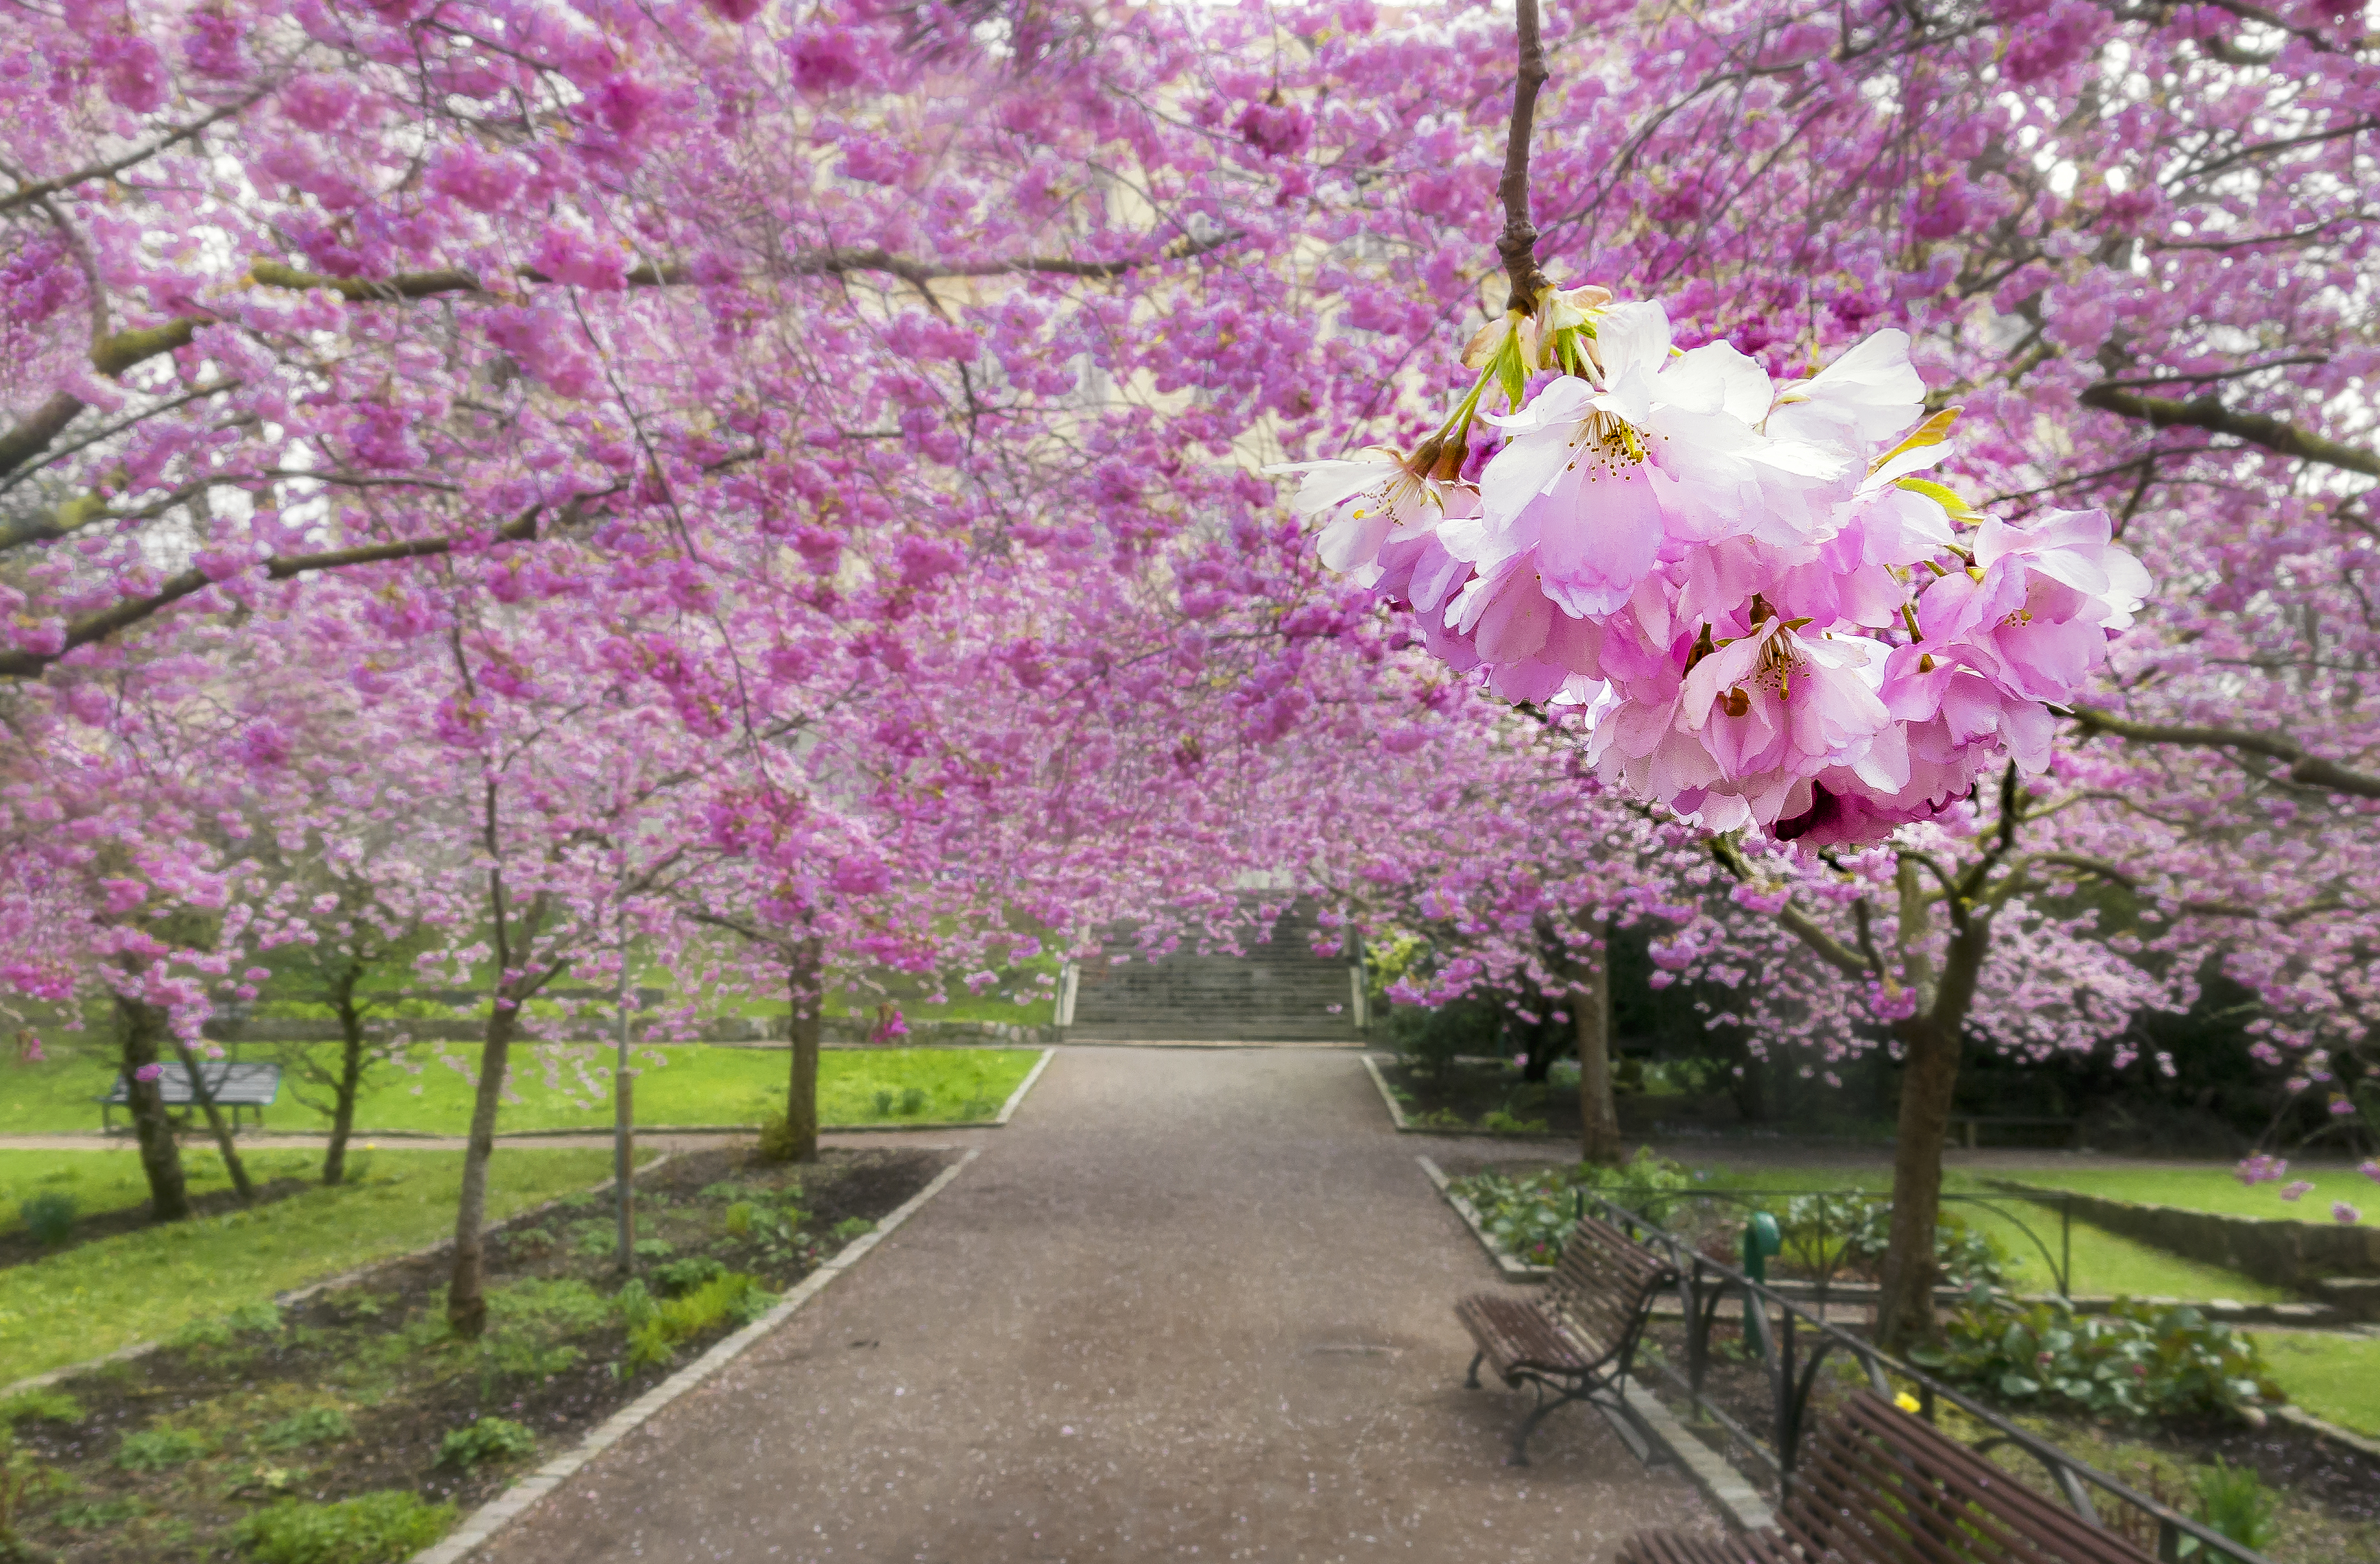 Magic light in cherry tree park, gossamer processed. Wind shaking petals from flowers